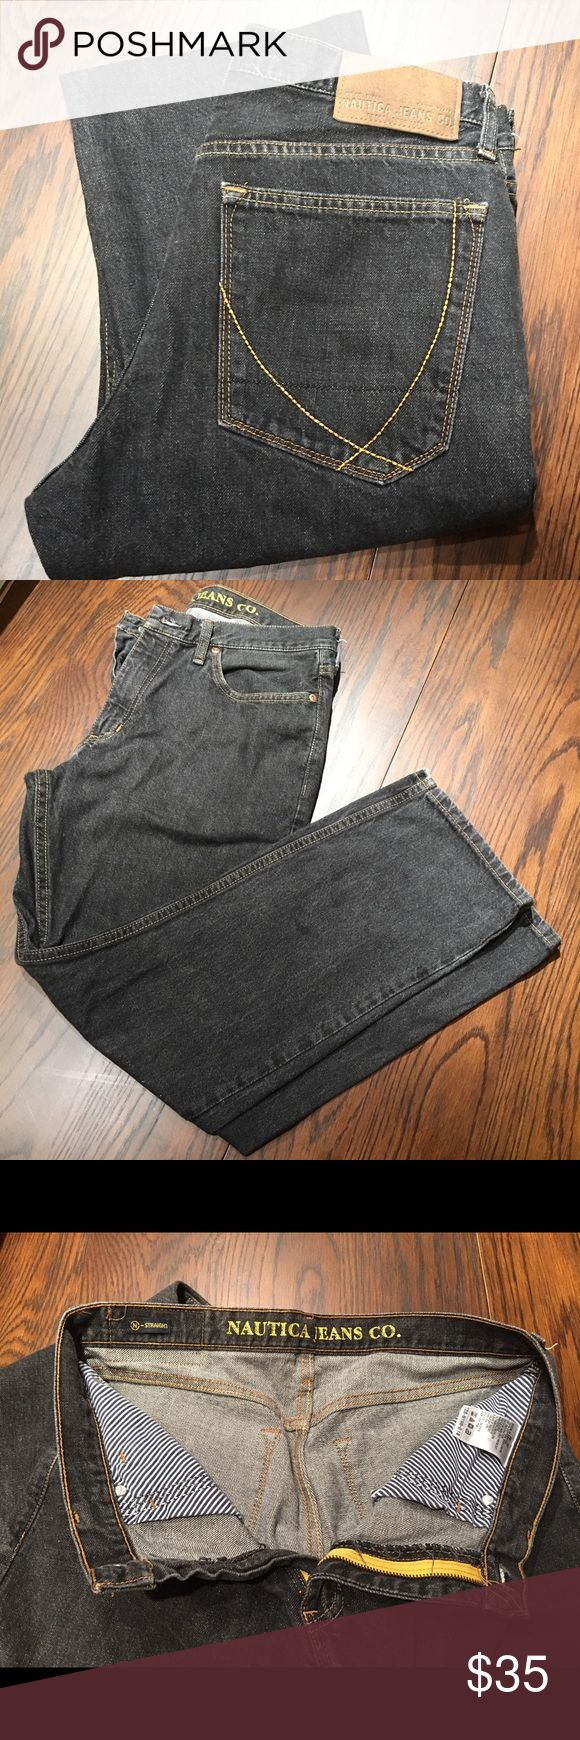 Nautical Jeans Co straight jeans 32/30 Nautical Jeans Co straight jeans 32/30. 100% cotton exclusive of decoration. Machine wash cold inside out. Nautica Jeans Straight